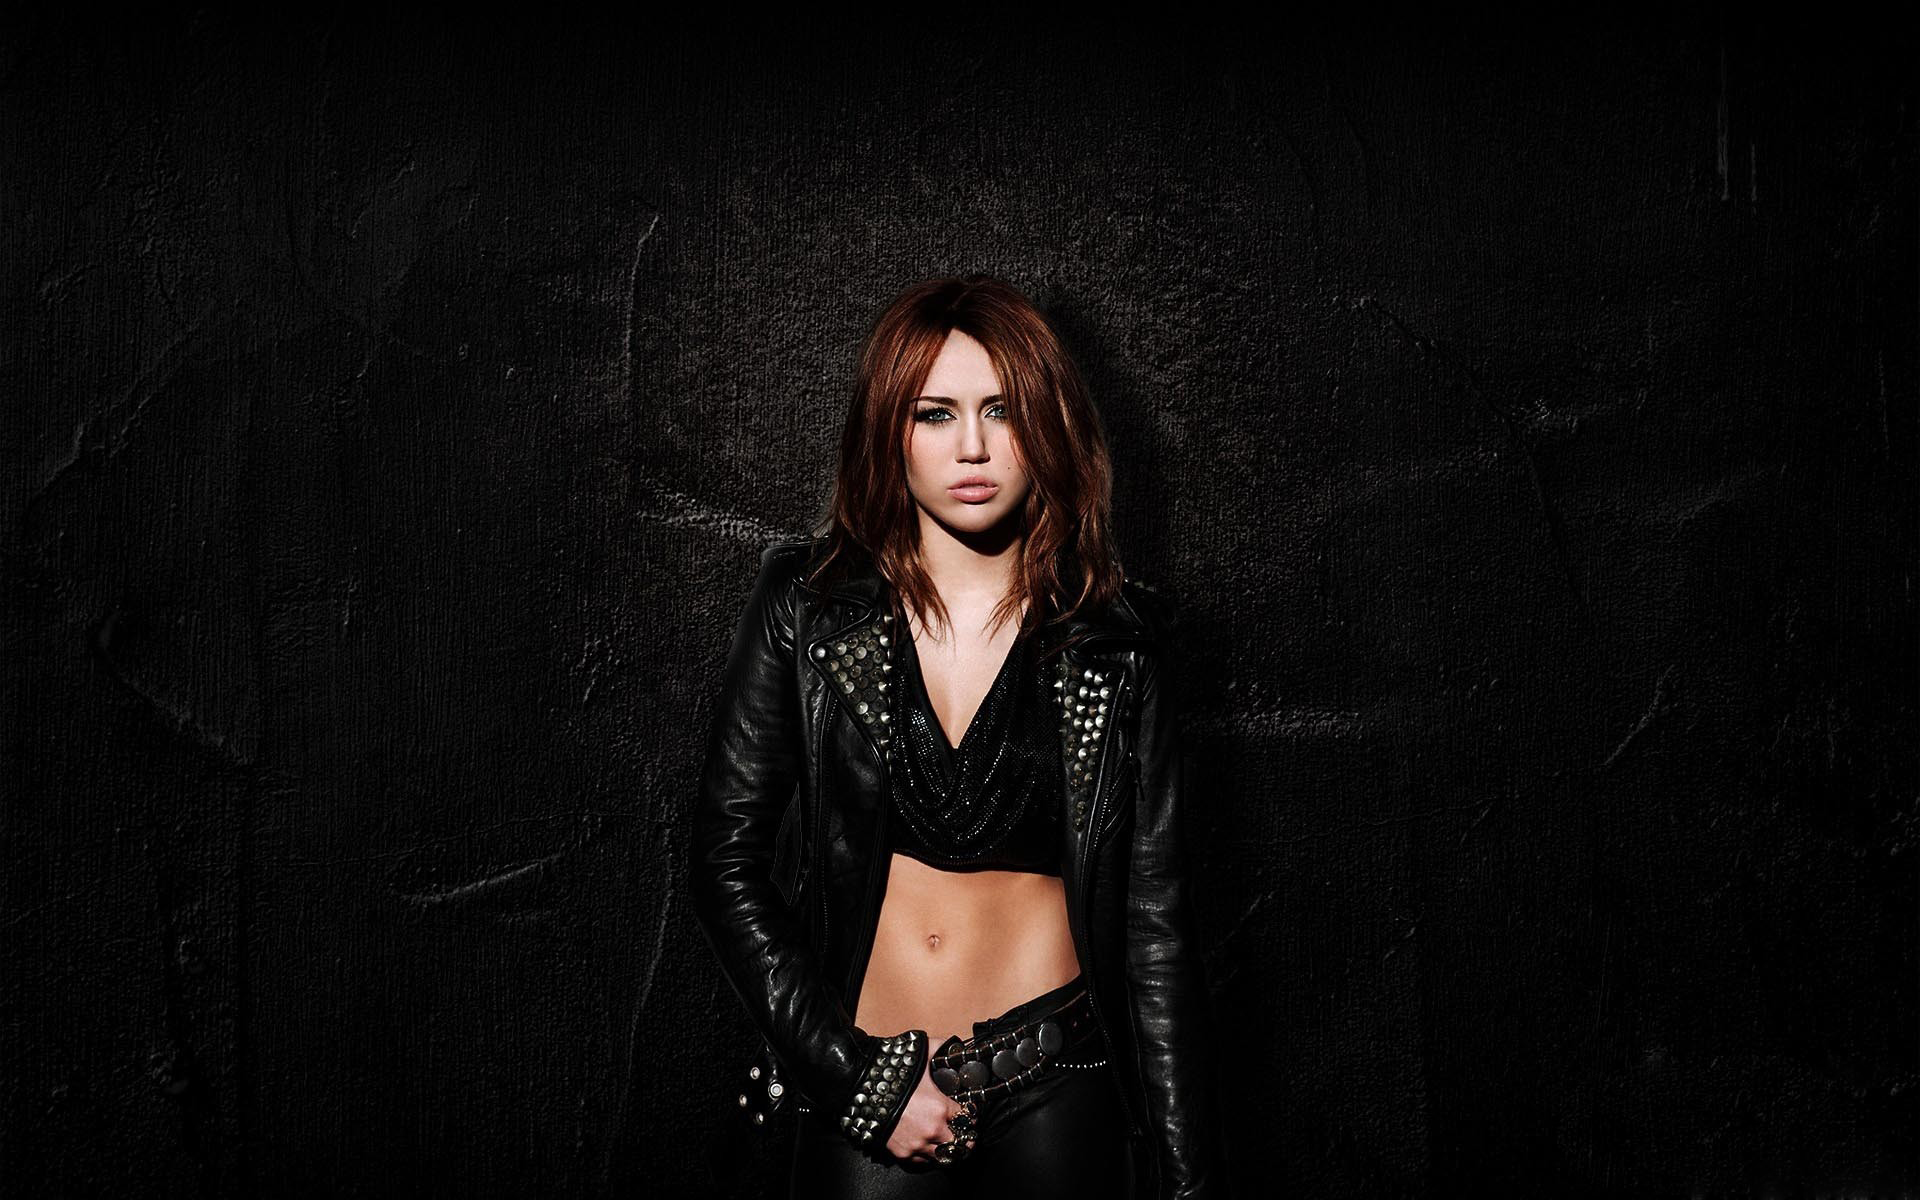 hd miley cyrus wallpapers - photo #21